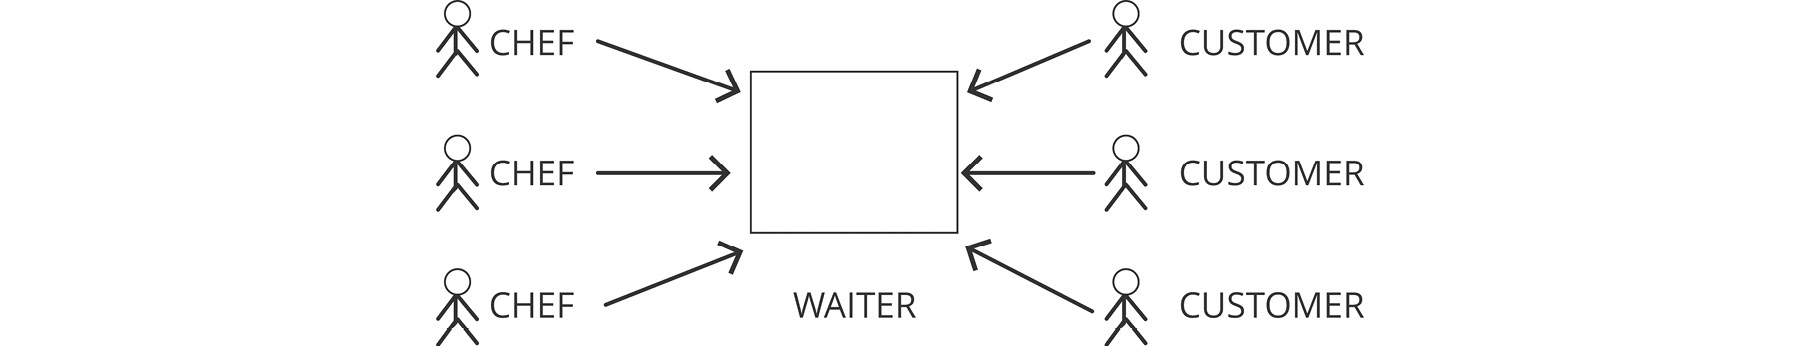 Figure 1.1: The waiter acting as the API for the customer